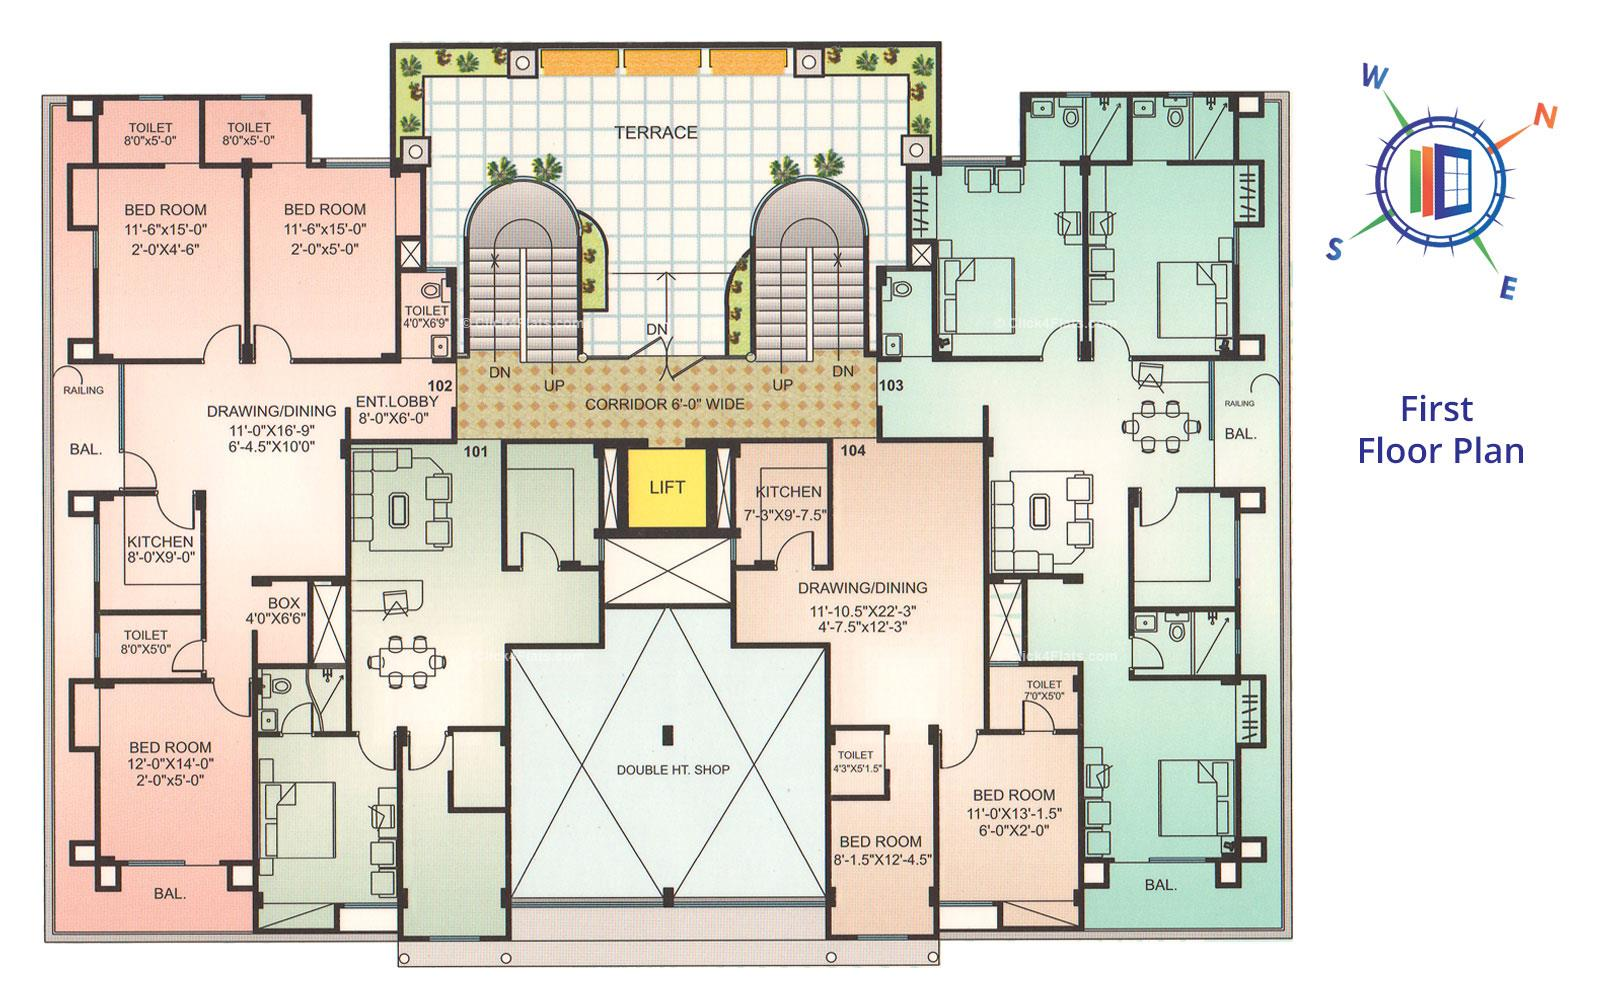 Whispering Palms First Floor Plan